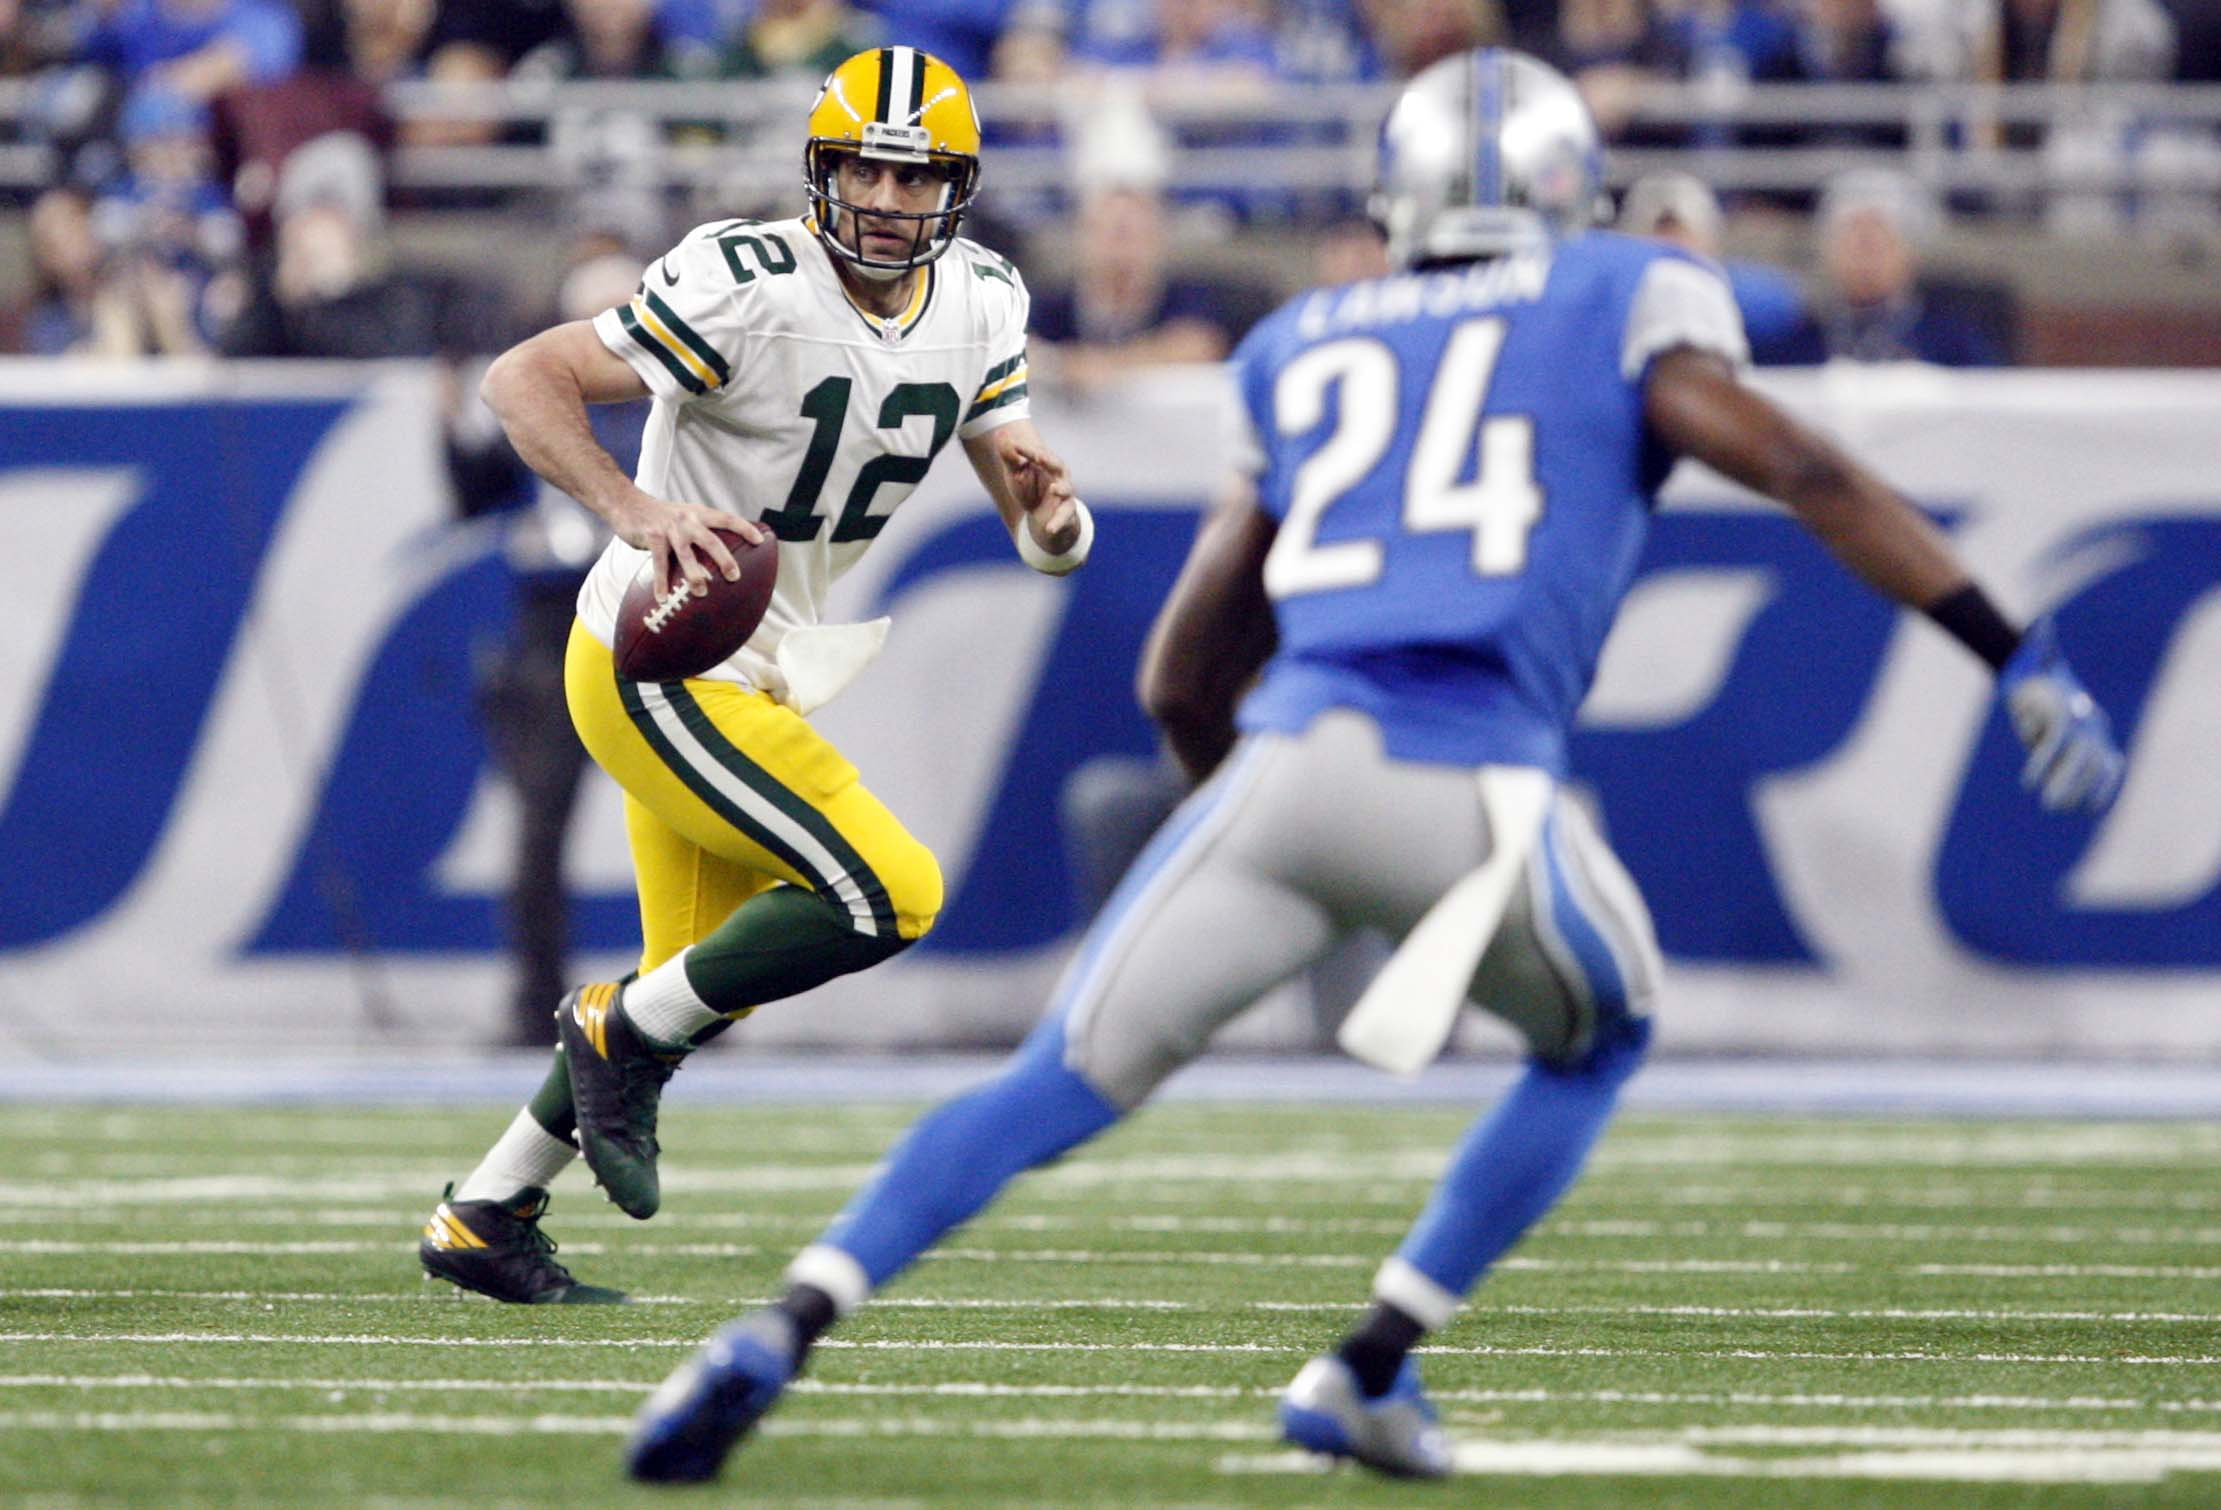 9783365-nfl-green-bay-packers-at-detroit-lions